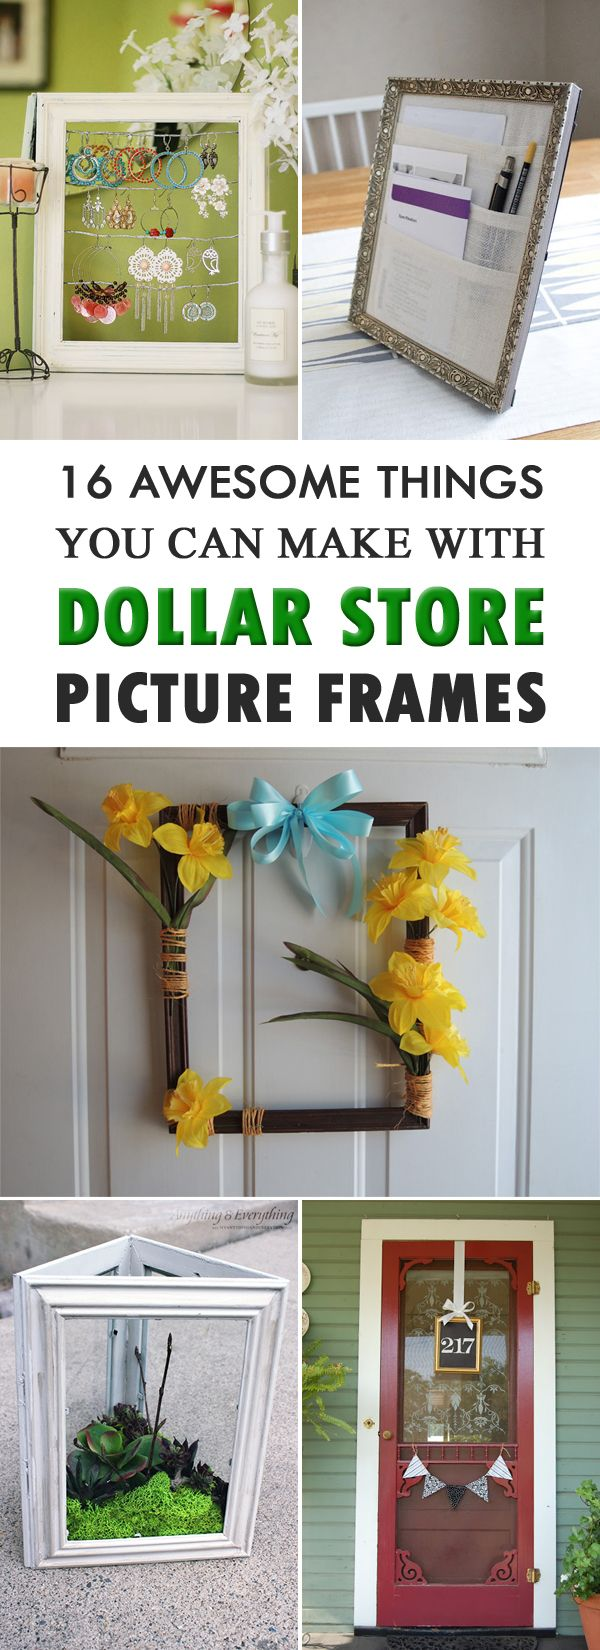 16 Awesome Things You Can Make With Dollar Store Picture Frames ...